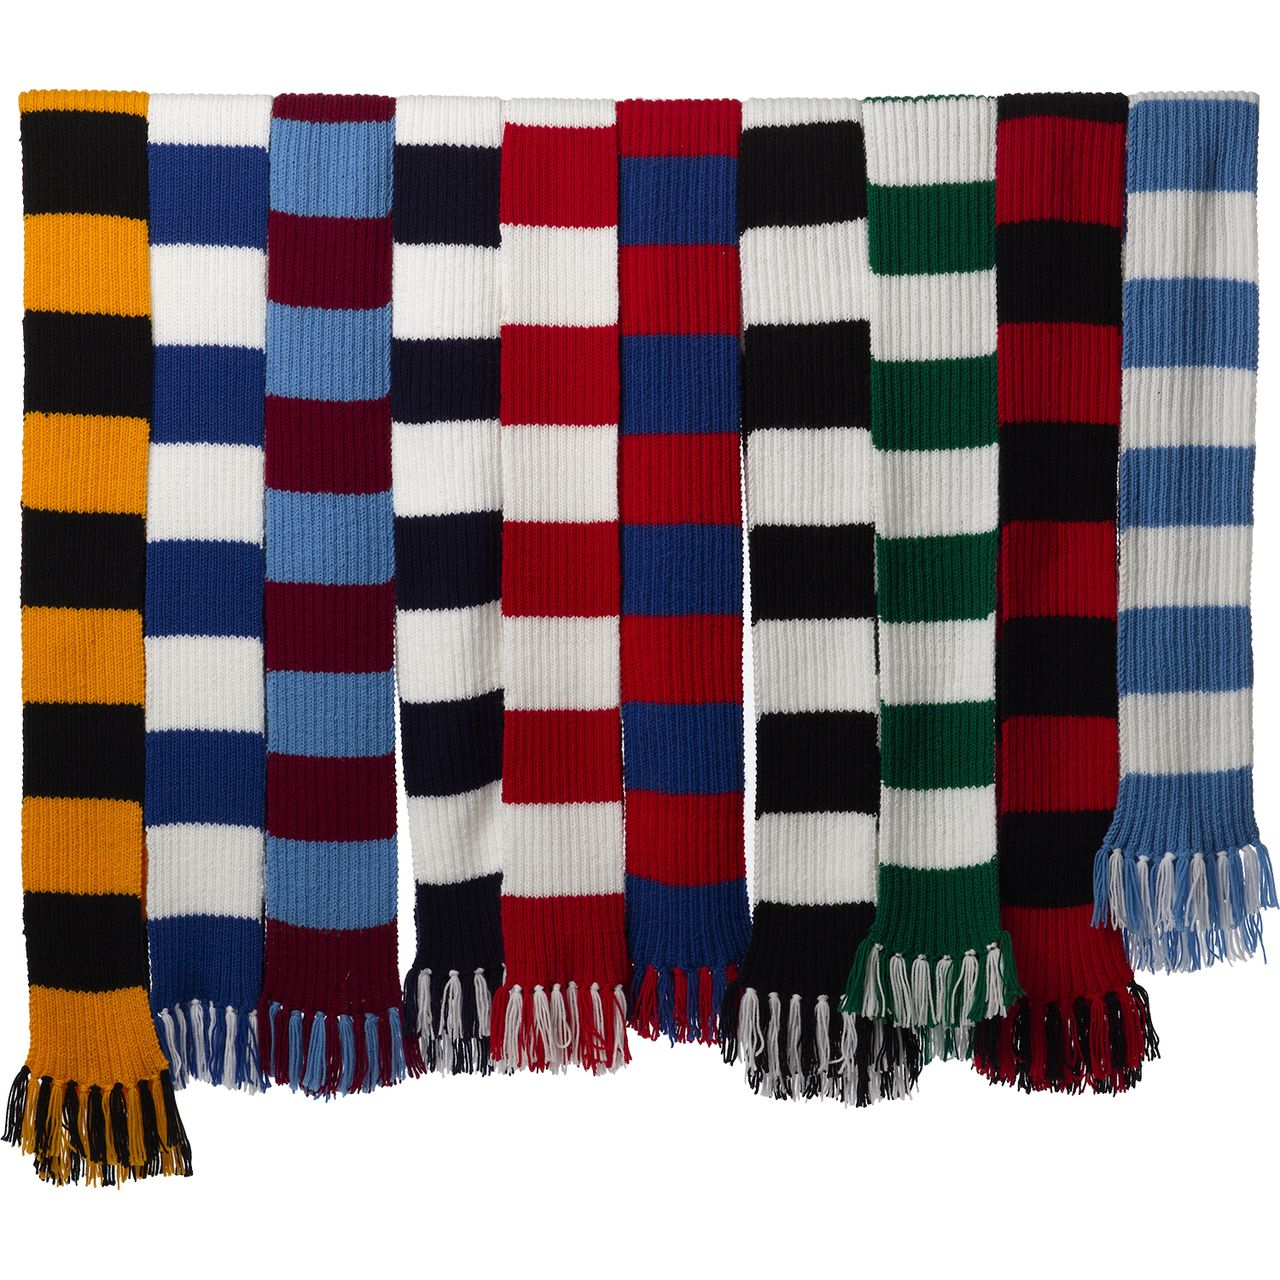 Striped Football Rugby Scarf Kit Knitting Pattern Wool